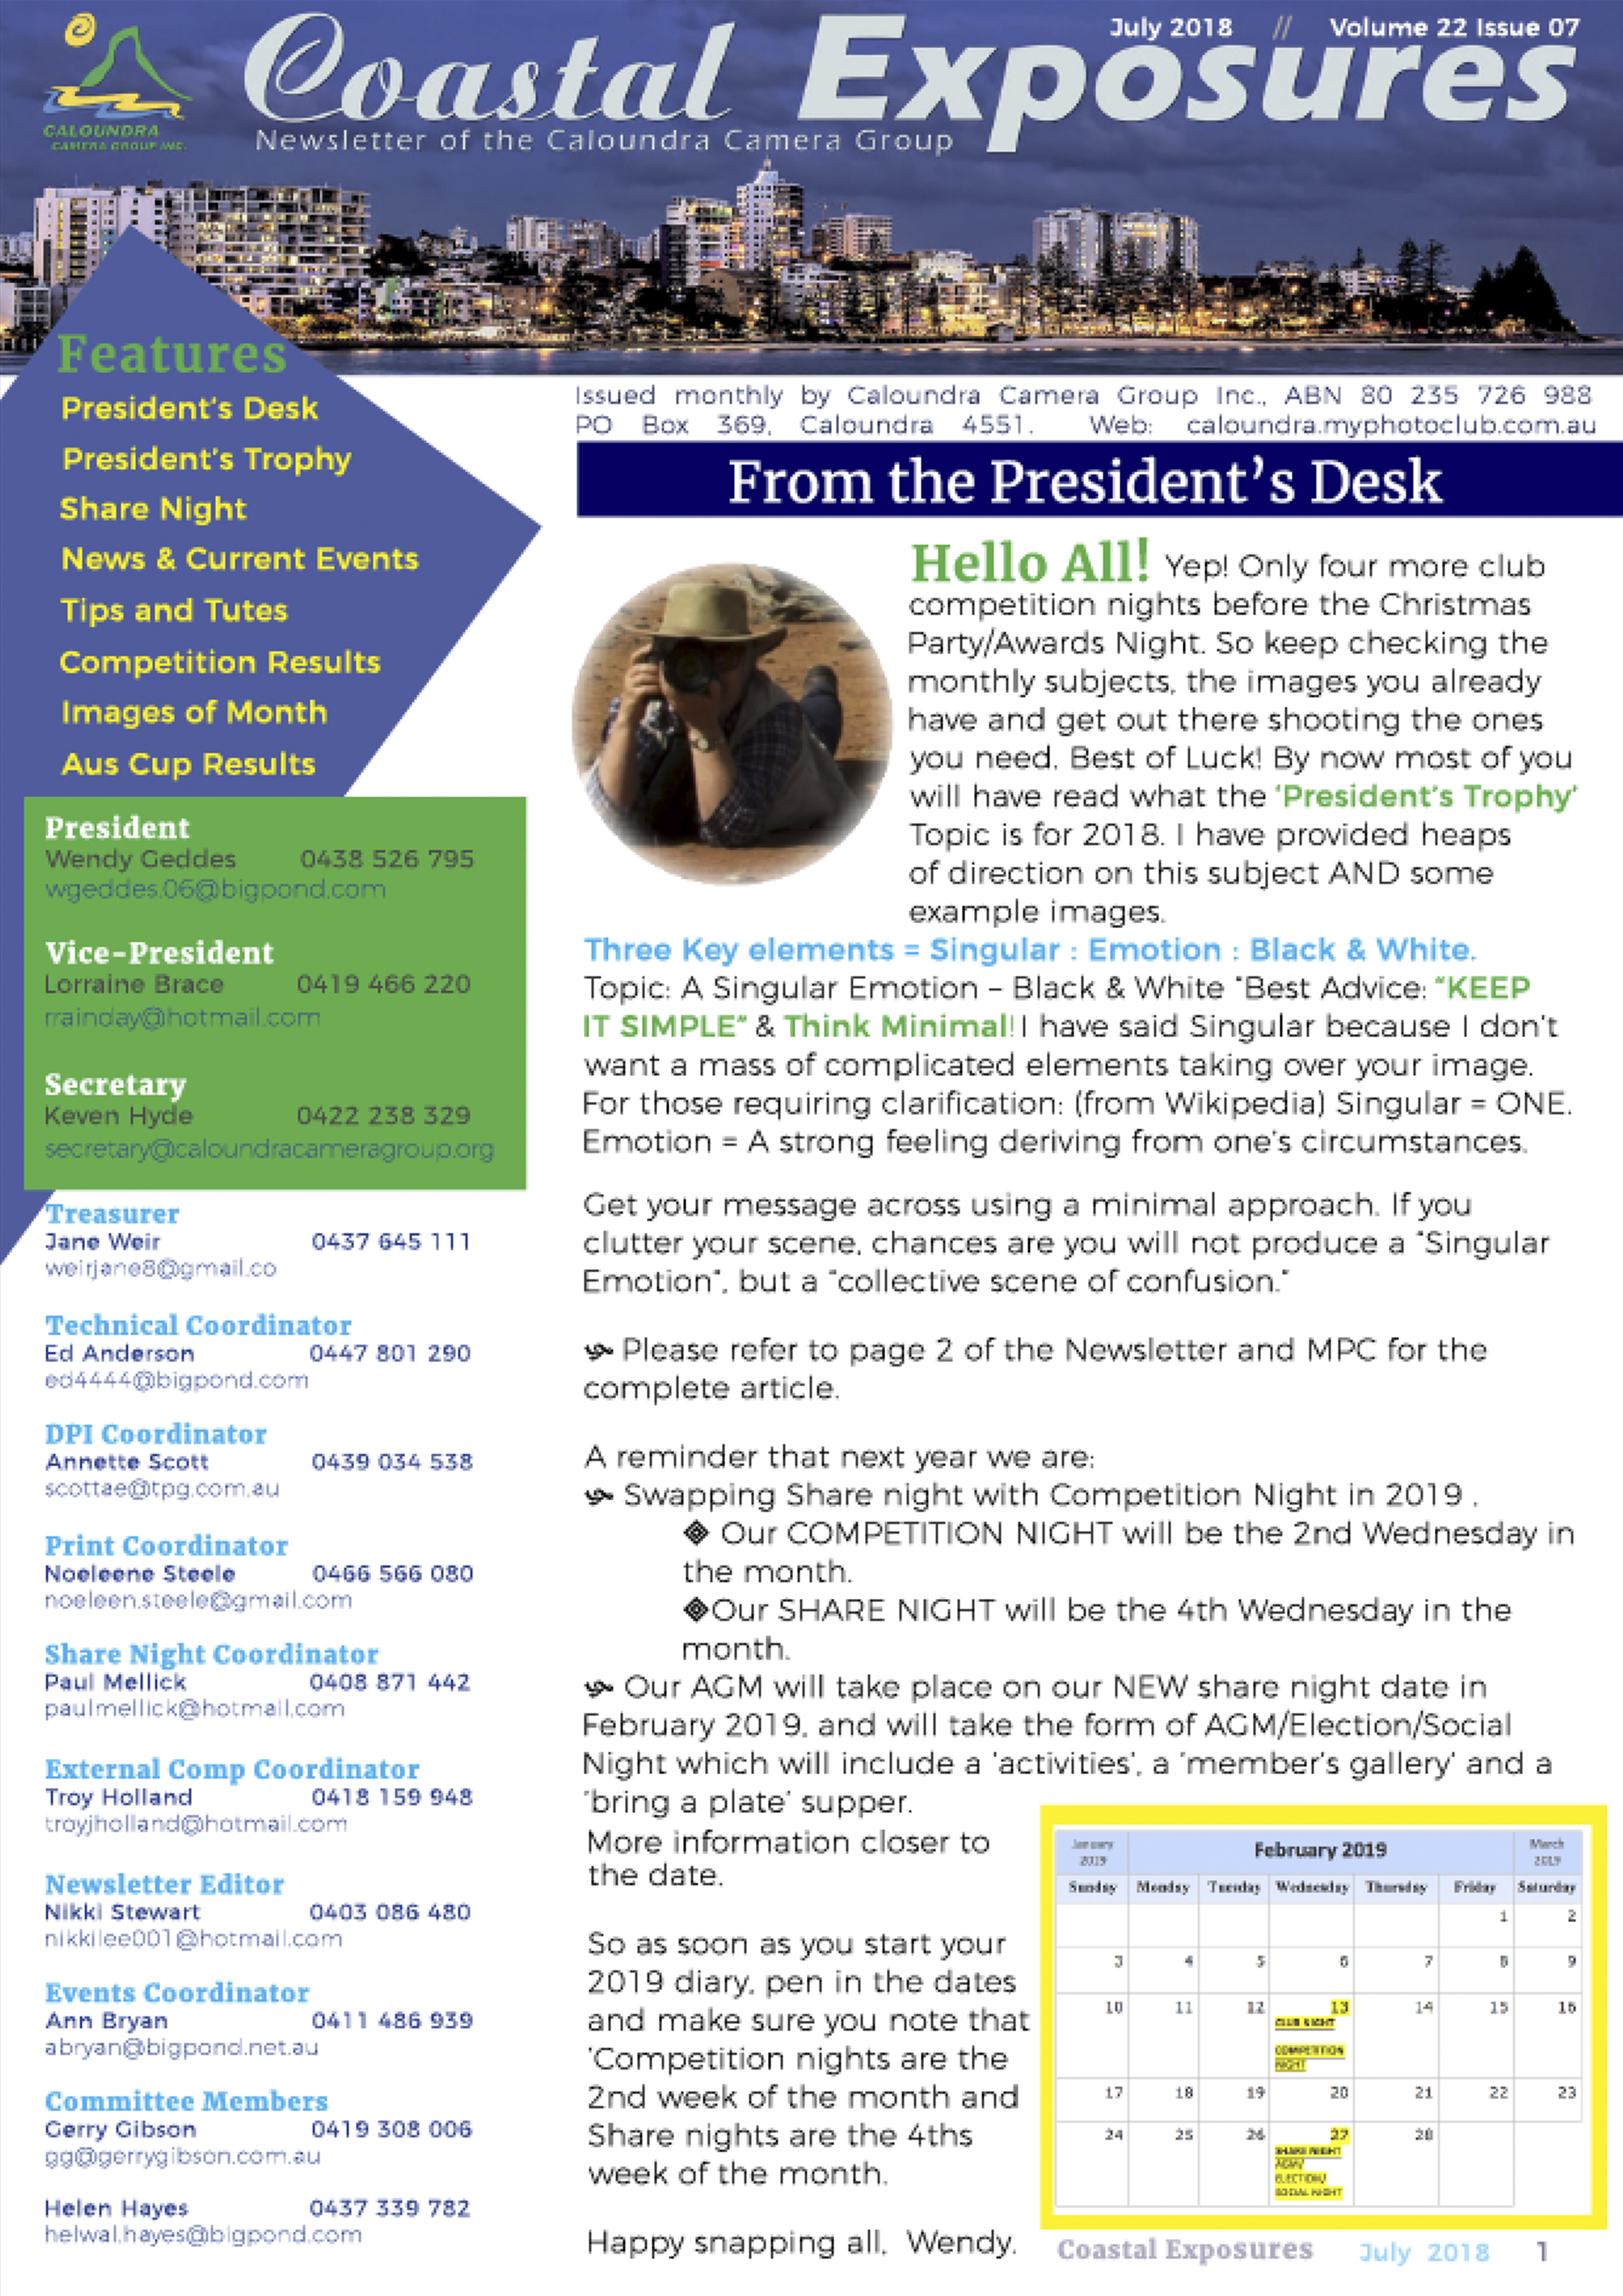 July 2018 Newsletter Cover Image